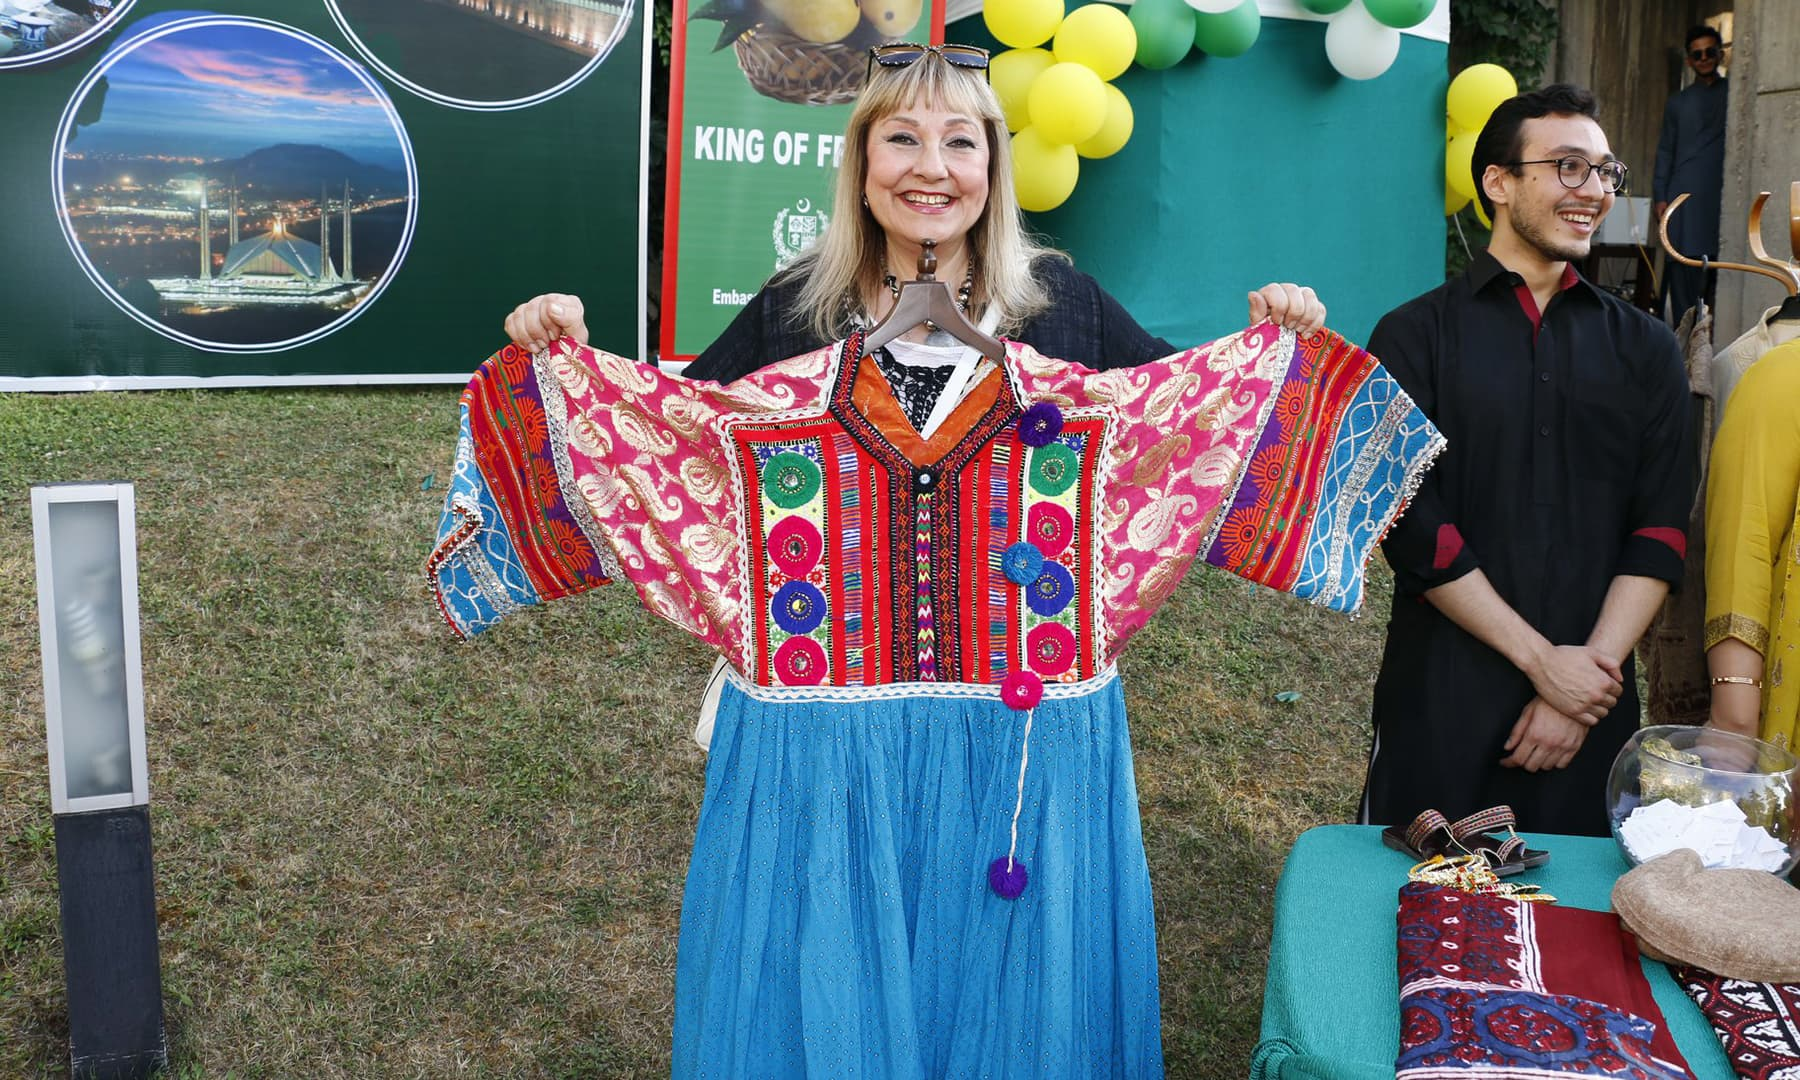 A woman posing with traditional, embroidered Pakistani attire.